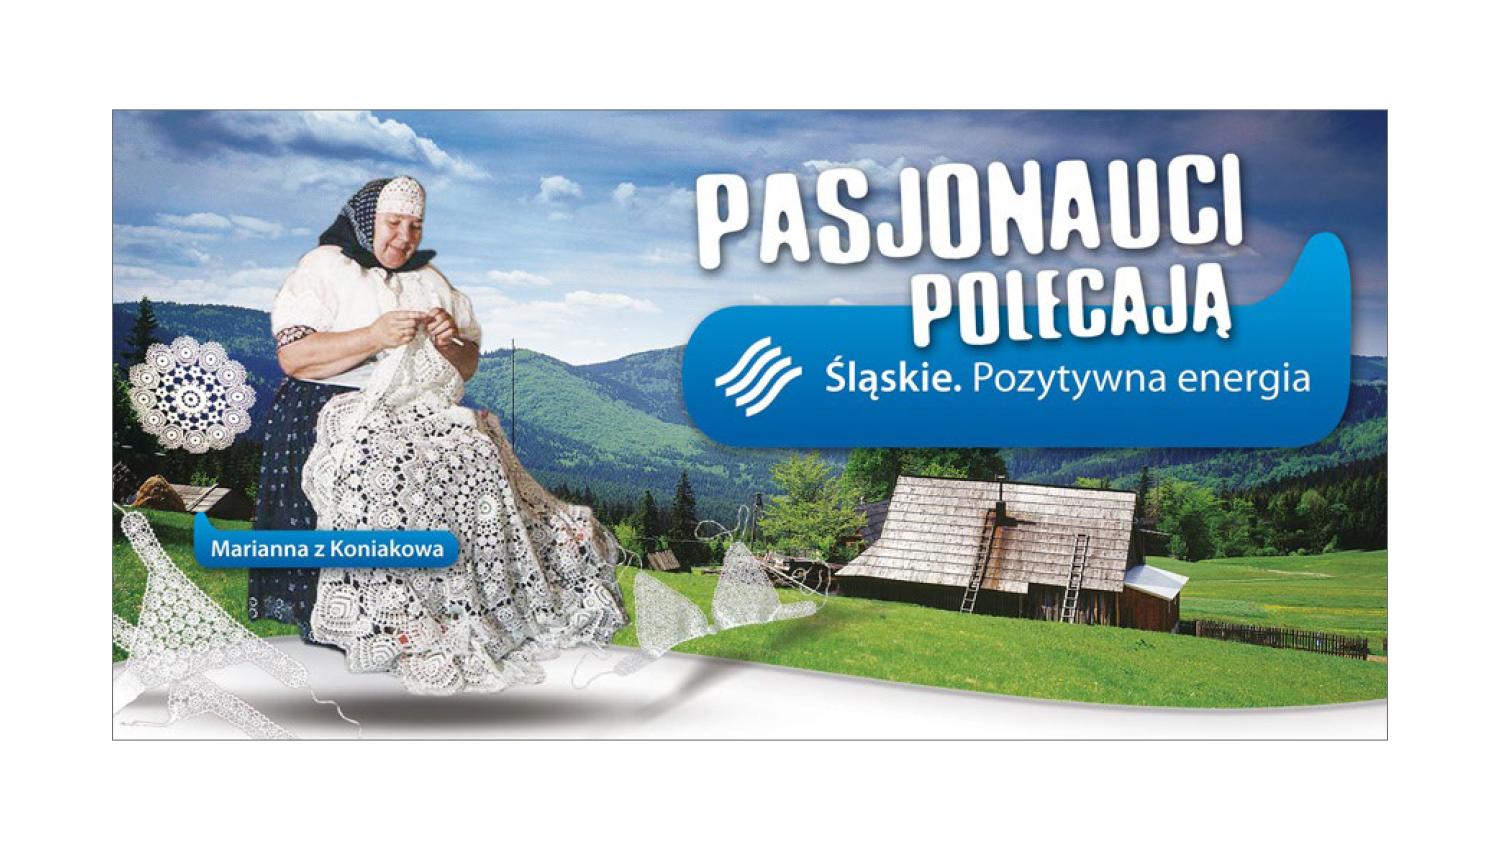 Eskadra - Fans recommend Silesia - Marshal office of the silesian voivodeship